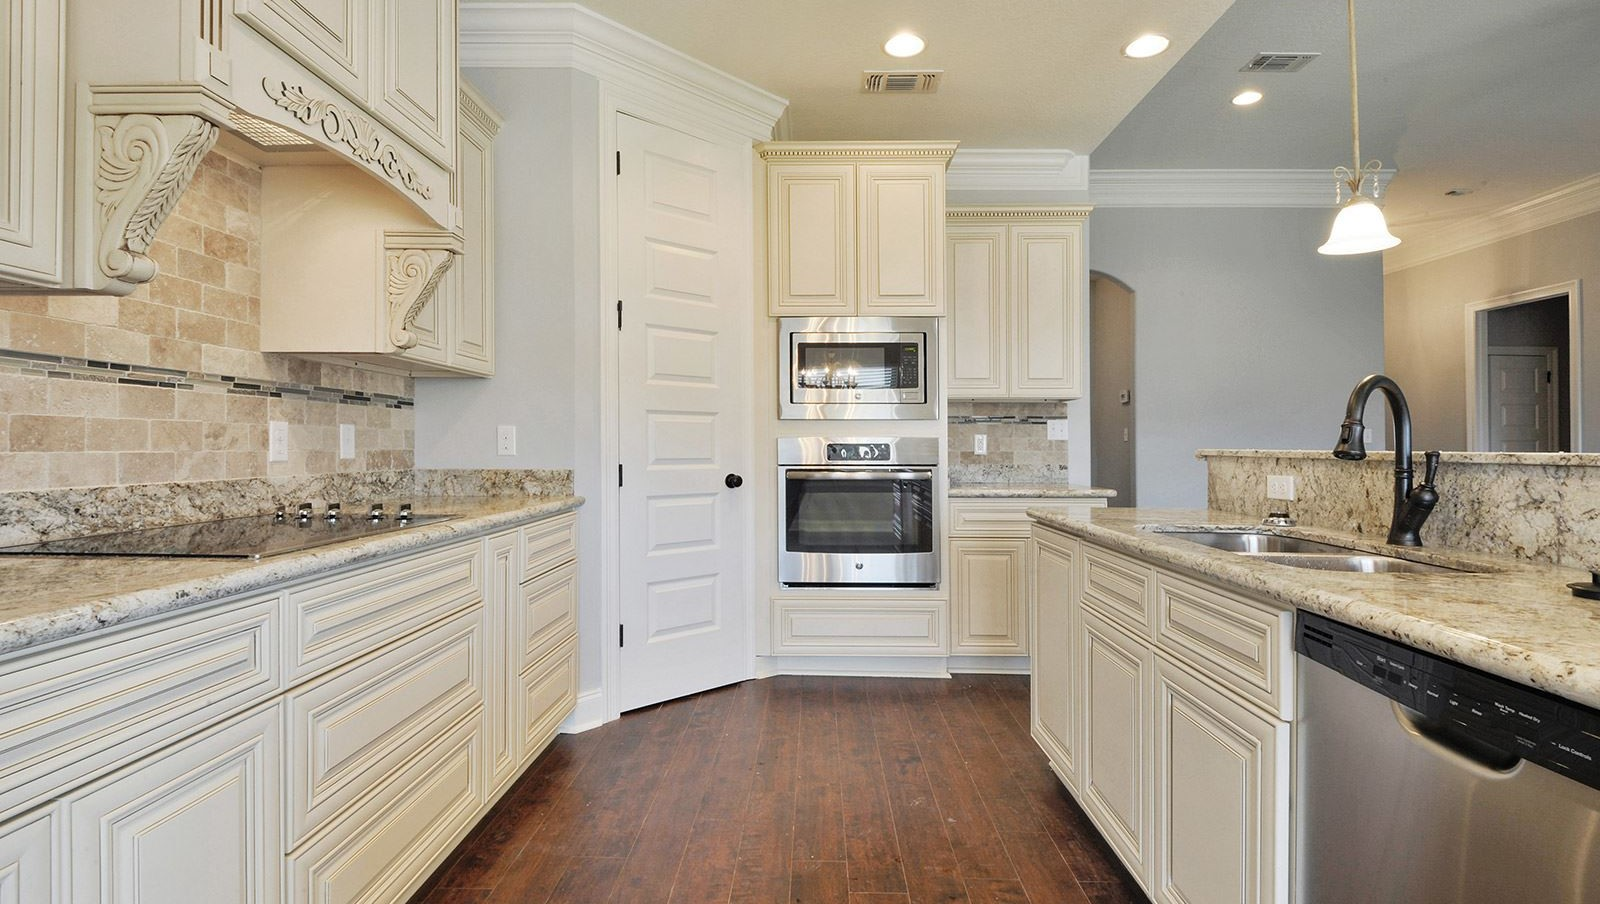 Most Durable Finish For Kitchen Cabinets